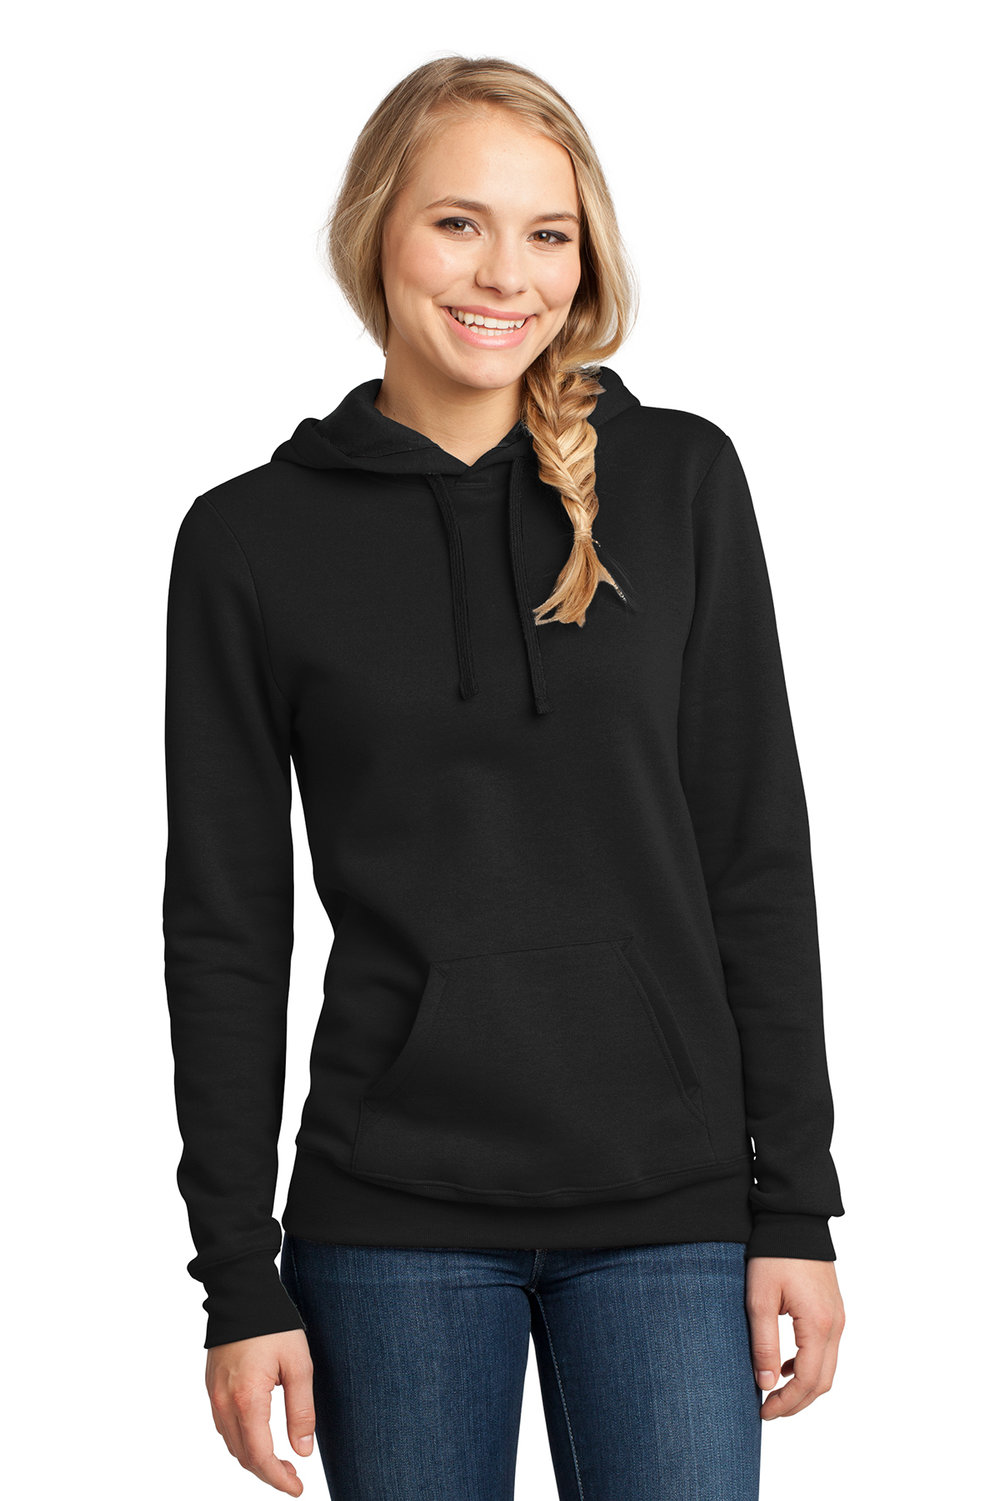 Women's Sweatshirt - Black (shown), Heather Gray, Charcoal, Royal Blue, Navy   | $22